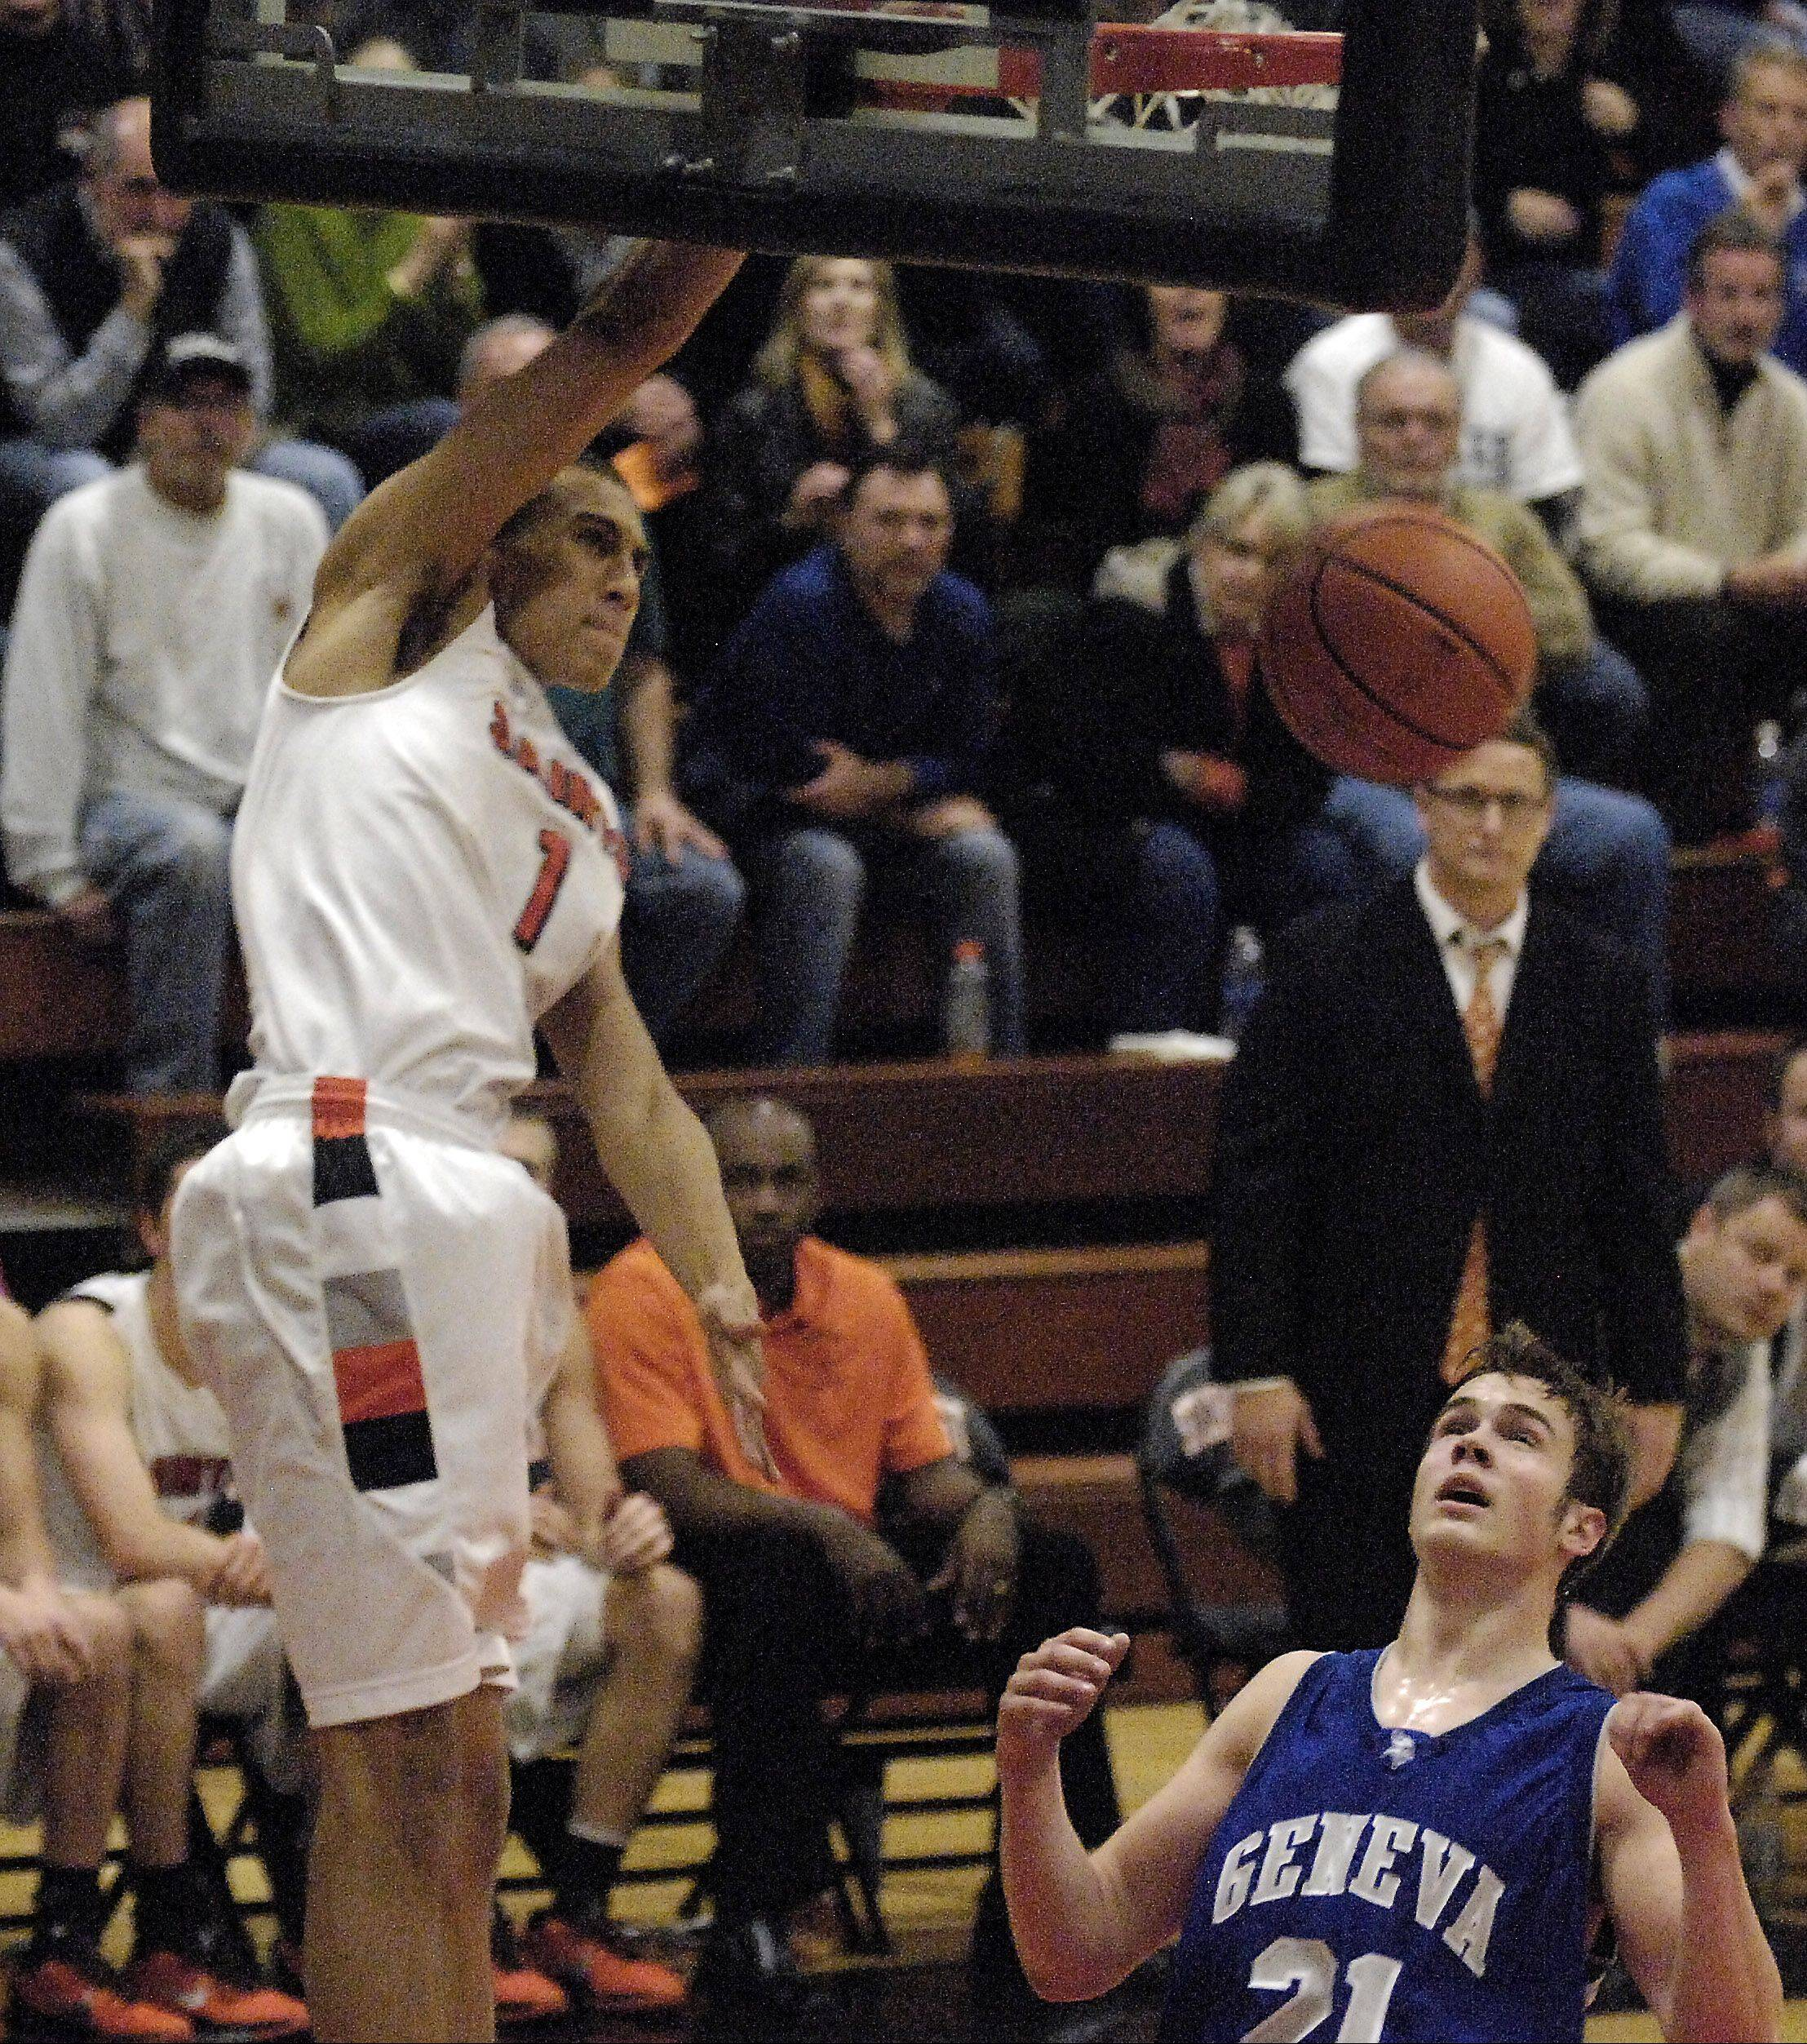 Geneva's Mike Trimble can only watch as St. Charles East's AJ Washington throws down a dunk.